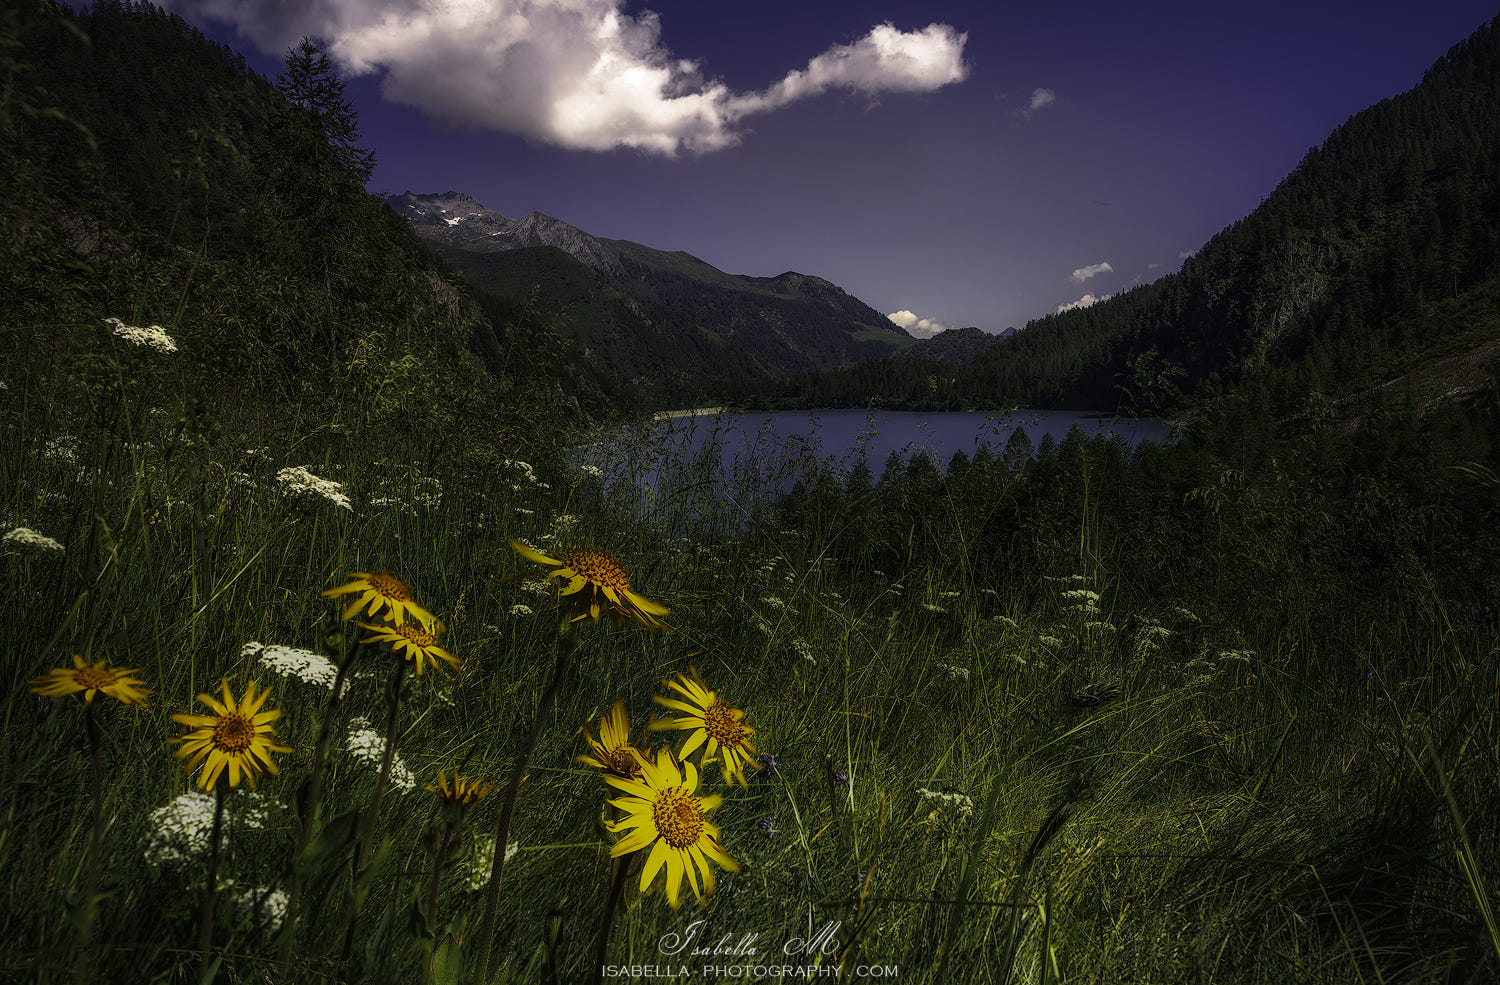 Isabella Materassi.Goodnight Daisies By Isabella Materassi 500px